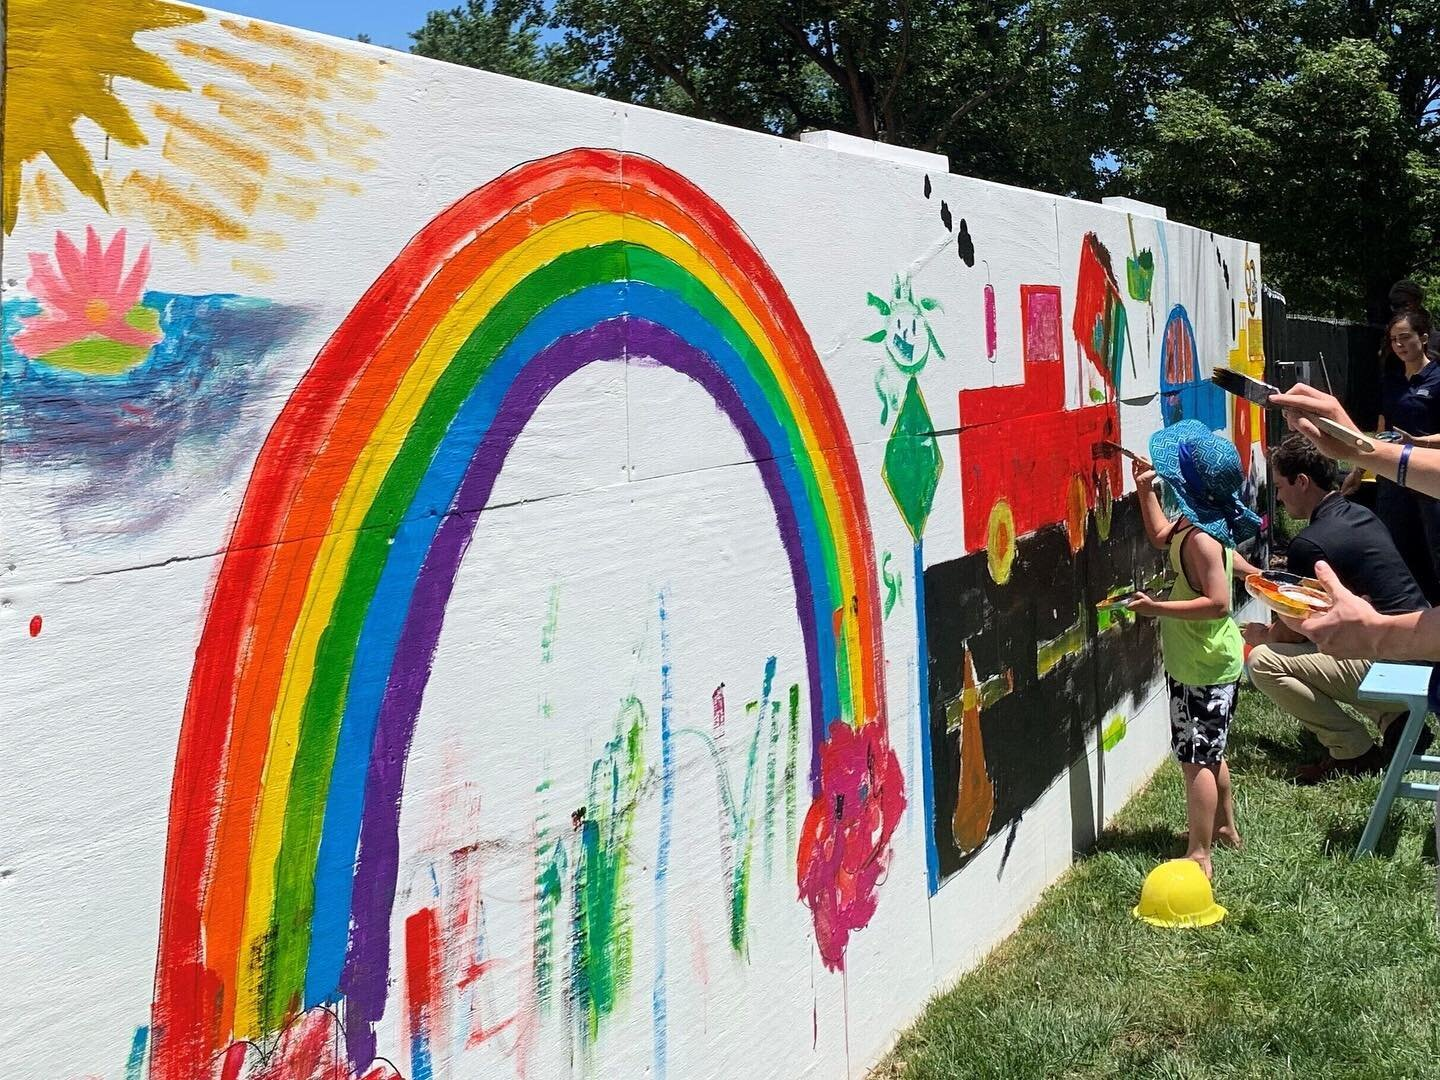 """Coakley & Williams Construction threw a Paint Party at our @paulistfathers' Residence & Mission House project in #WashingtonDC. Max Zarate, #ProjectManager, invited neighbors to paint a #mural on the temporary wall surrounding the #constructionproject.⠀ ⠀ CWC #summerintern, Connor Bath, said, """"The paint party was my first experience at a CWC community event and it made me realize how much of an impact a project has on the local community. I enjoyed interacting with the local kids and I could tell the event meant a lot to them and their view on #construction."""" #BuildingCommunity #Buildingfor60⠀ ⠀ Keep reading: https://buff.ly/3rkTpCG"""